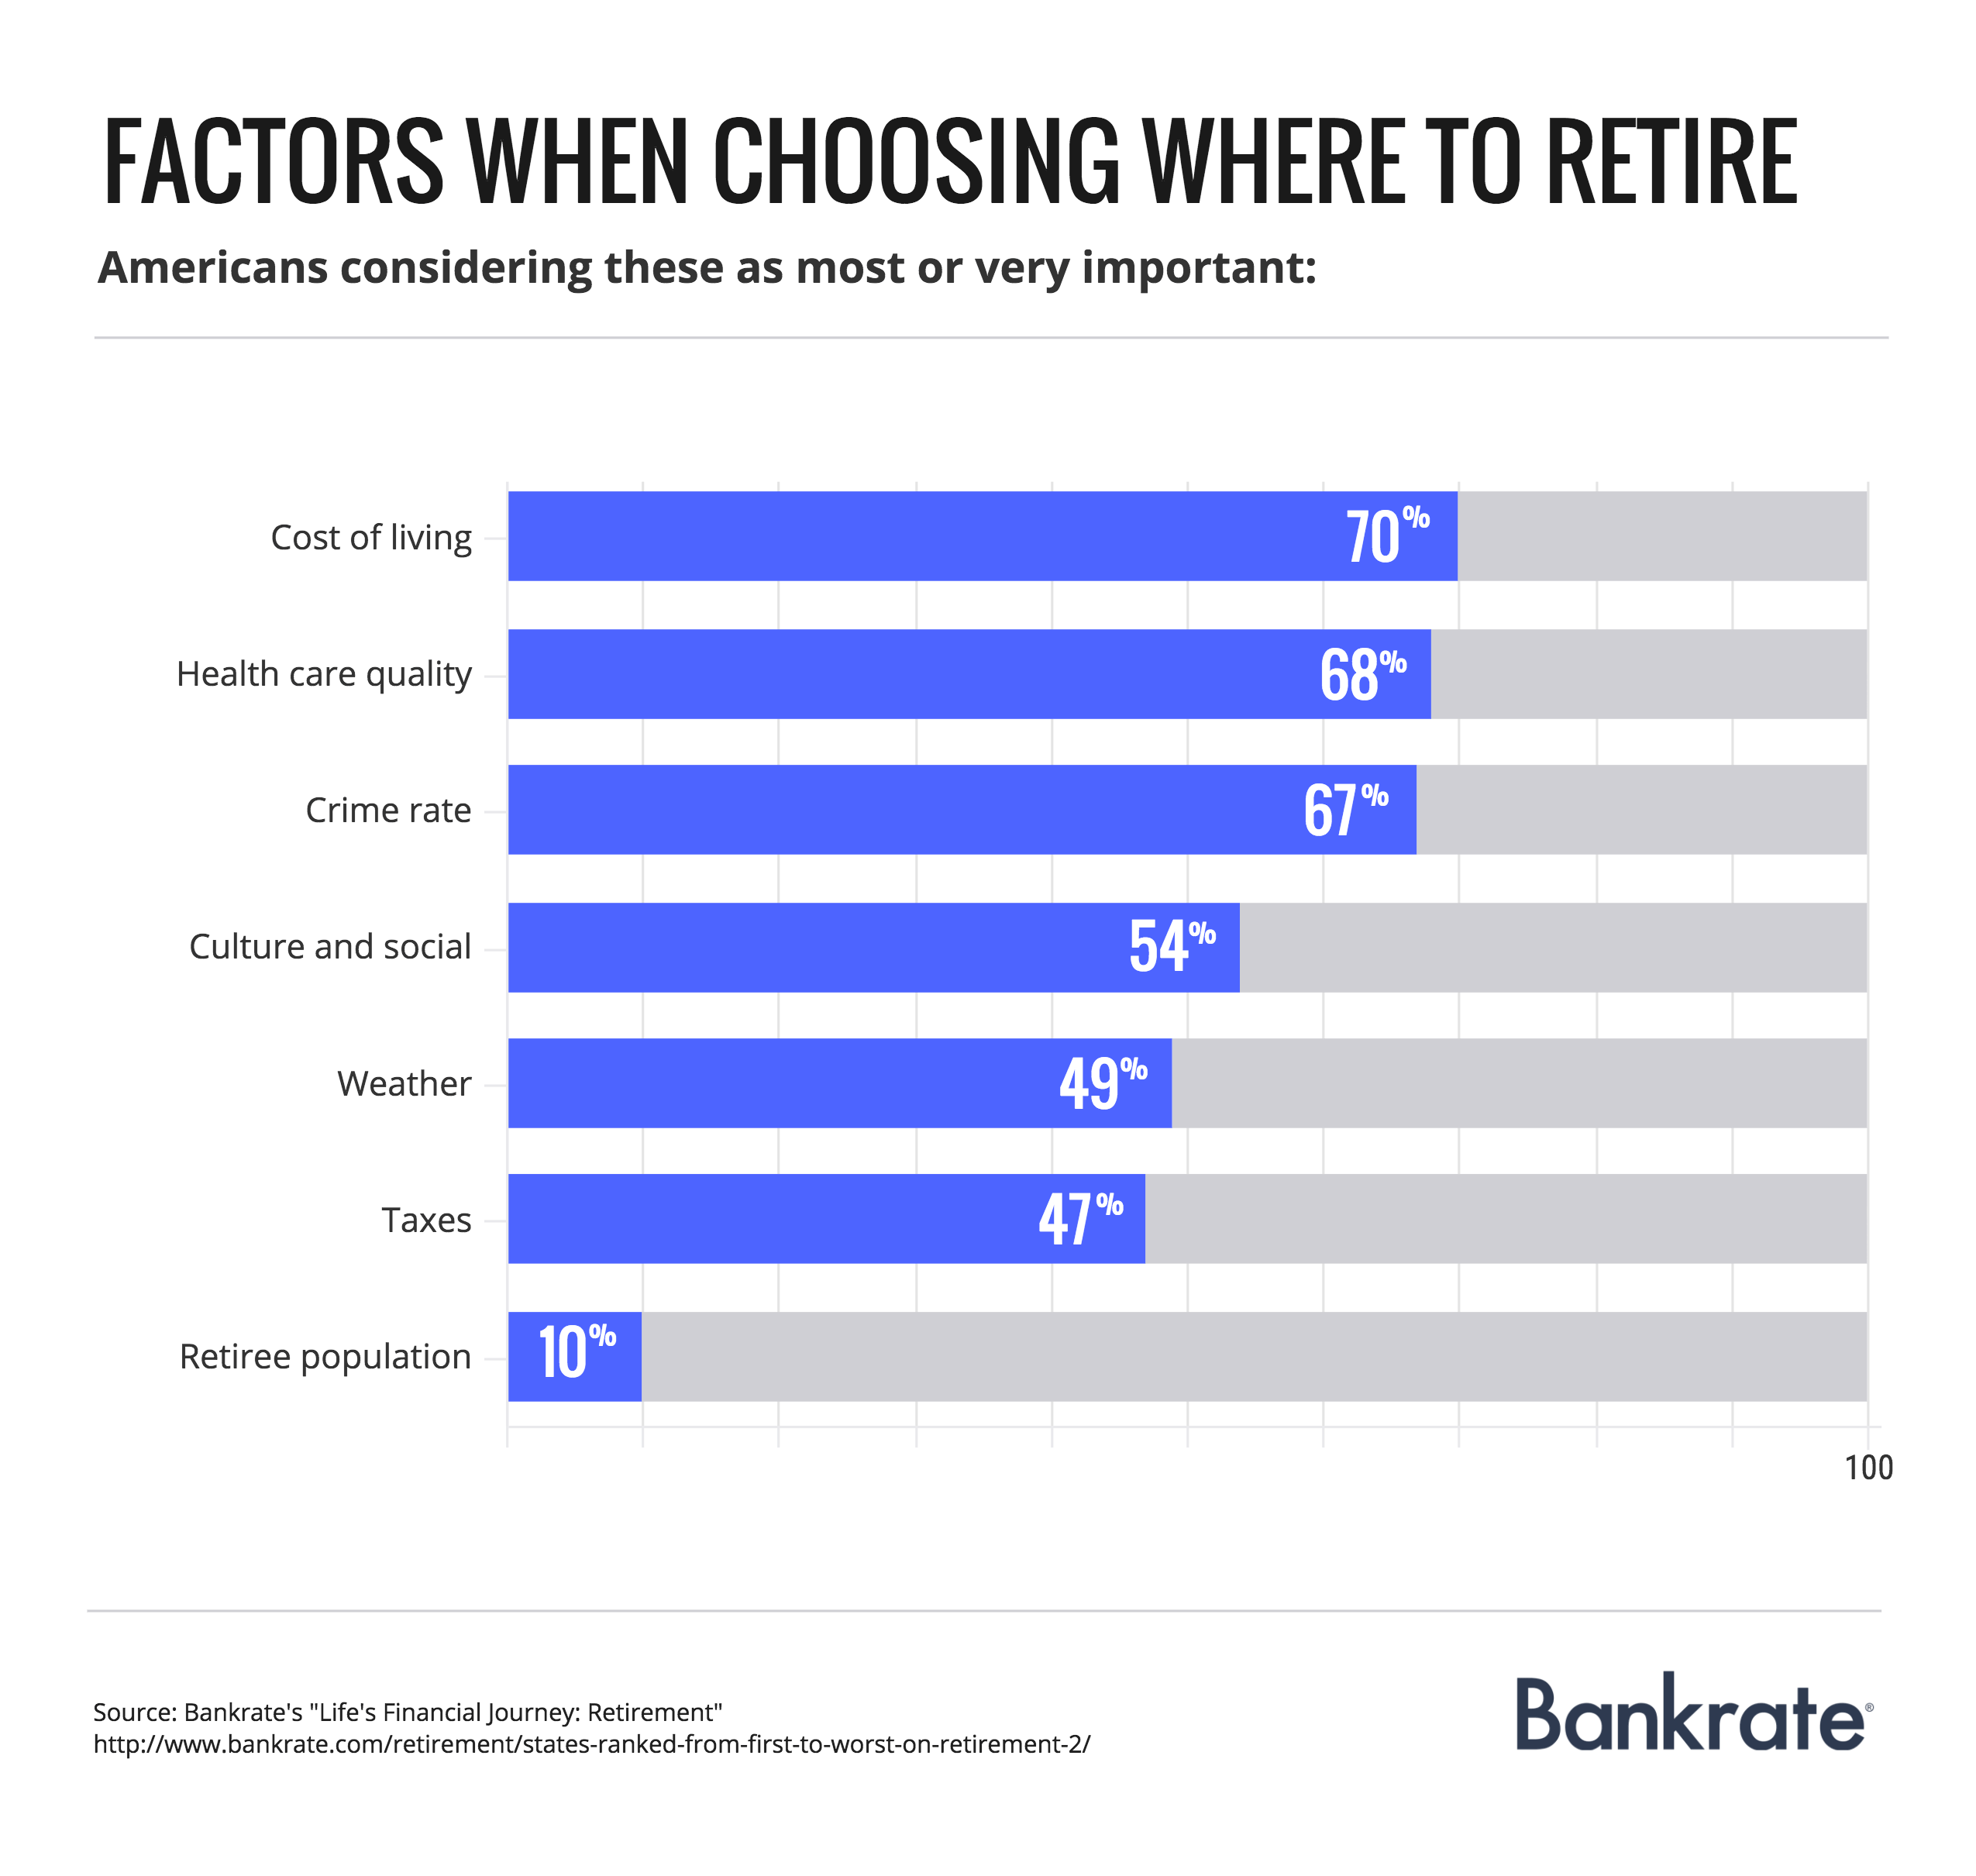 Factors when choosing where to retire